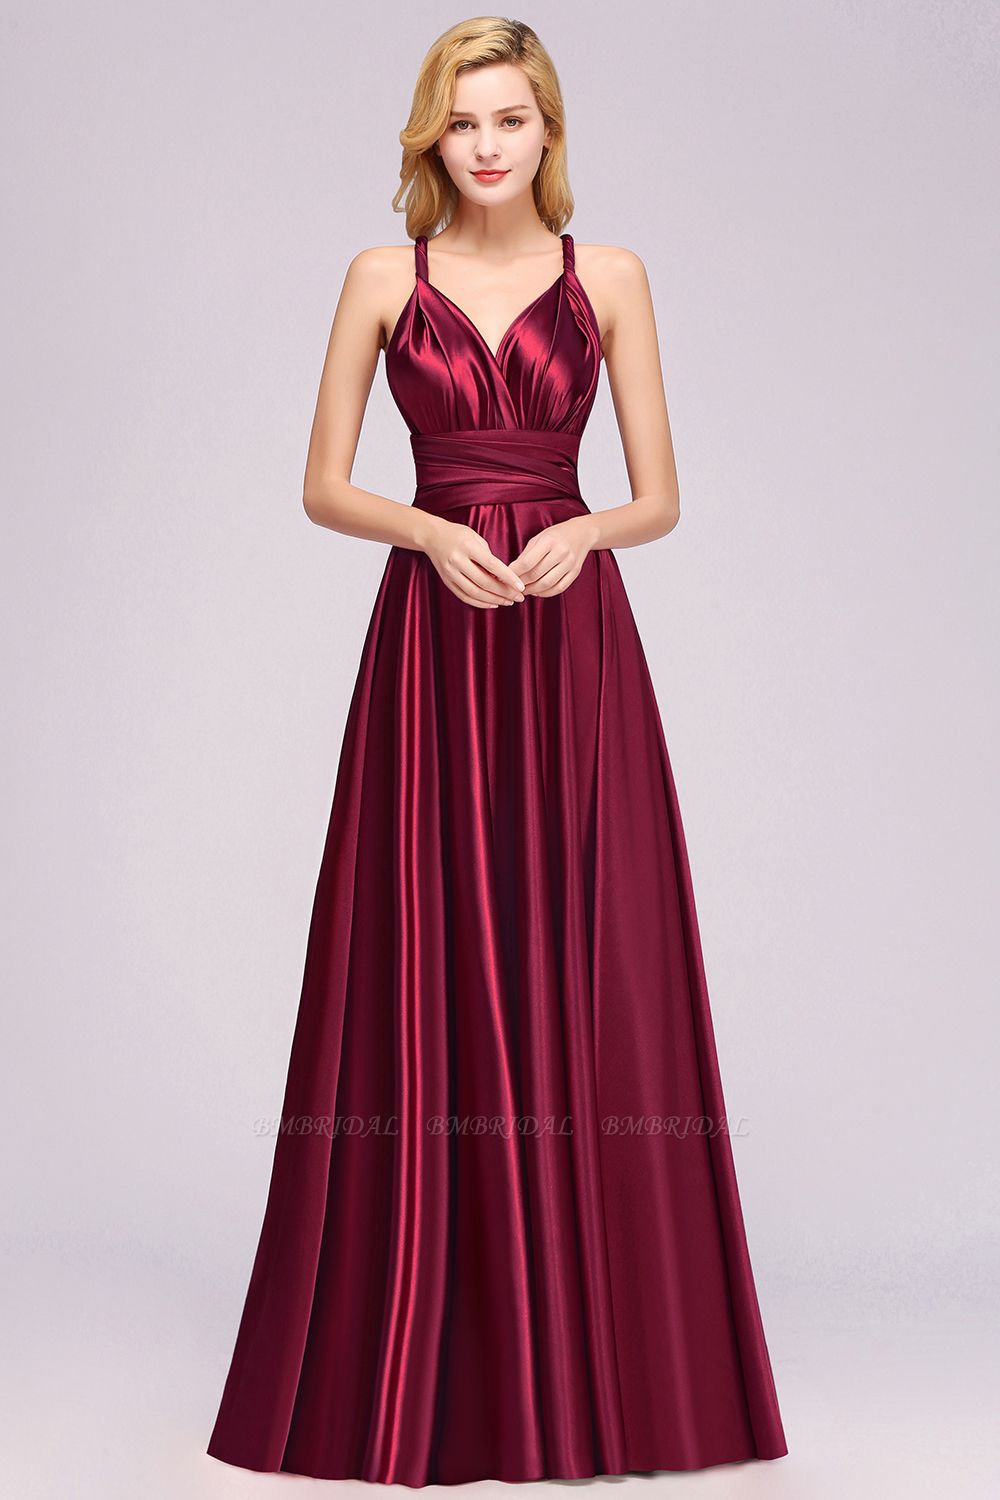 BMbridal Chic Burgundy Satin Long Bridesmaid Dresses With One Shoulder